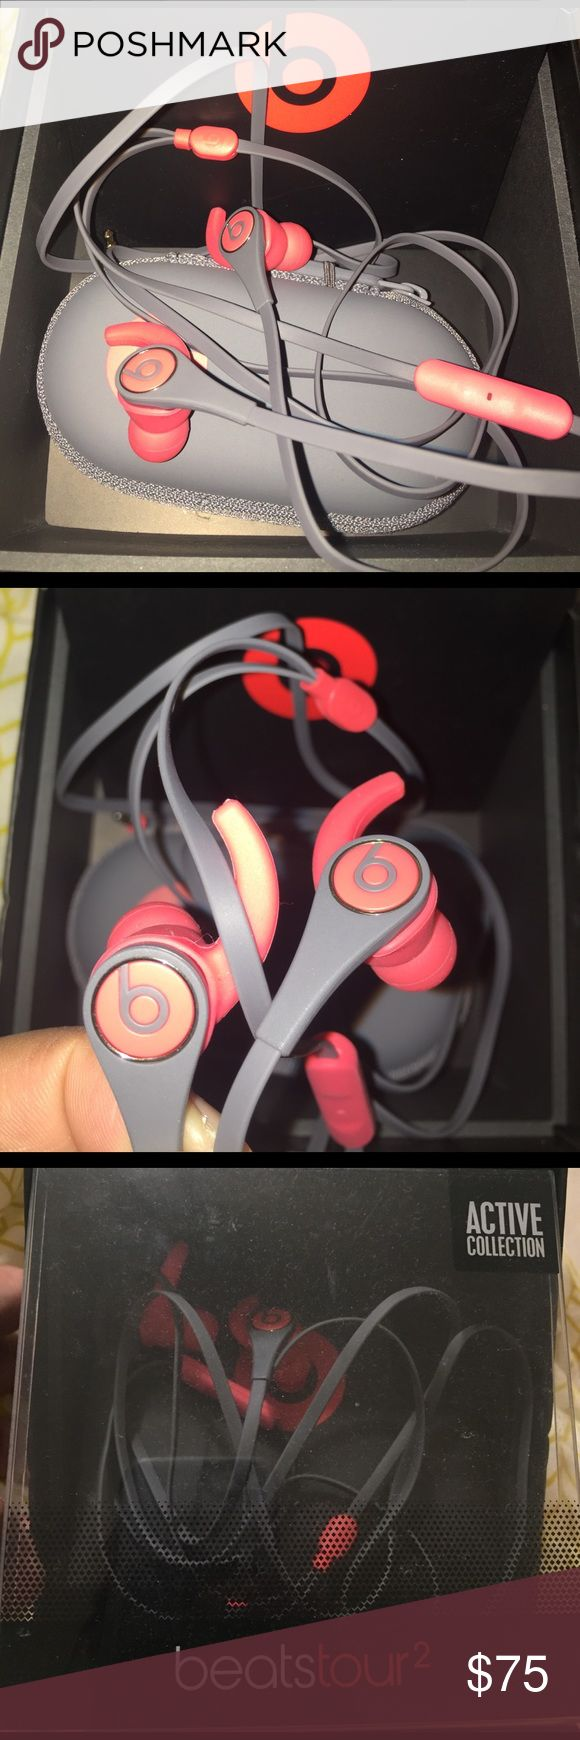 BRAND NEW BEATS TOUR 2 active collection BRAND NEW BEATS TOUR 2 active collection - beats by dre. in ear headphone, remote talk, sweat & water resistant, option ear tip sizes, removable secure-fit wingtip, carrying case - gray & red. Accessories